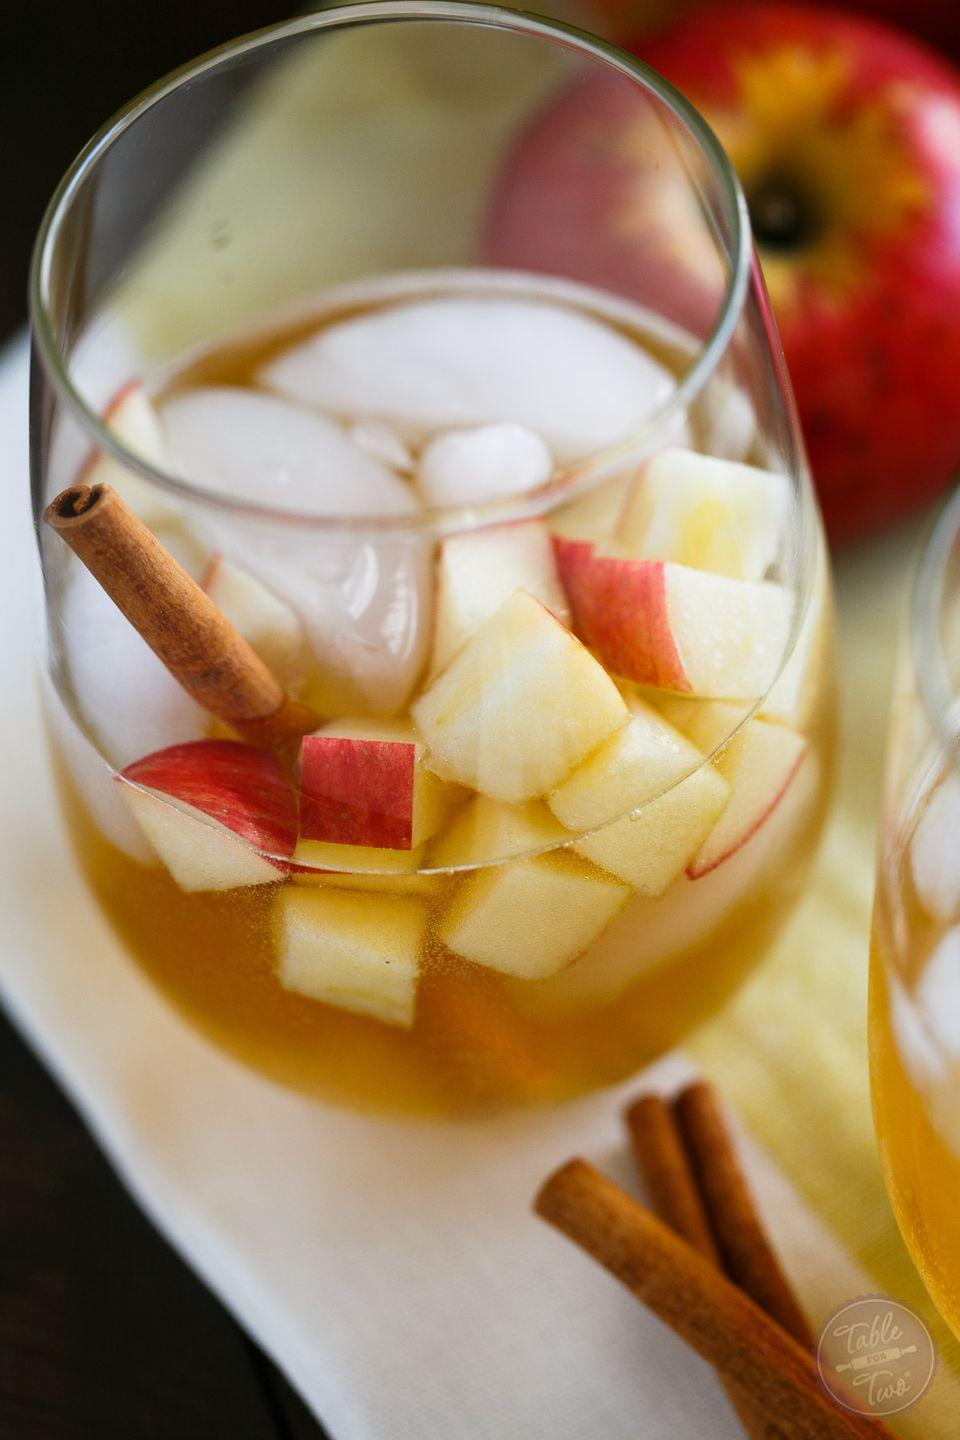 """<p>Make enough of this fantastic cinnamon-pear simple syrup to add to more fall cocktails in the future.</p><p><strong>Get the recipe at <a href=""""https://www.tablefortwoblog.com/cinnamon-pear-fall-cider/"""" rel=""""nofollow noopener"""" target=""""_blank"""" data-ylk=""""slk:Table for Two"""" class=""""link rapid-noclick-resp"""">Table for Two</a>.</strong></p><p><a class=""""link rapid-noclick-resp"""" href=""""https://go.redirectingat.com?id=74968X1596630&url=https%3A%2F%2Fwww.walmart.com%2Fip%2FChef-Craft-E-Z-Out-Ice-Cube-Tray%2F633343435&sref=https%3A%2F%2Fwww.thepioneerwoman.com%2Ffood-cooking%2Fmeals-menus%2Fg33510531%2Ffall-cocktail-recipes%2F"""" rel=""""nofollow noopener"""" target=""""_blank"""" data-ylk=""""slk:SHOP ICE CUBE TRAYS"""">SHOP ICE CUBE TRAYS</a> </p>"""